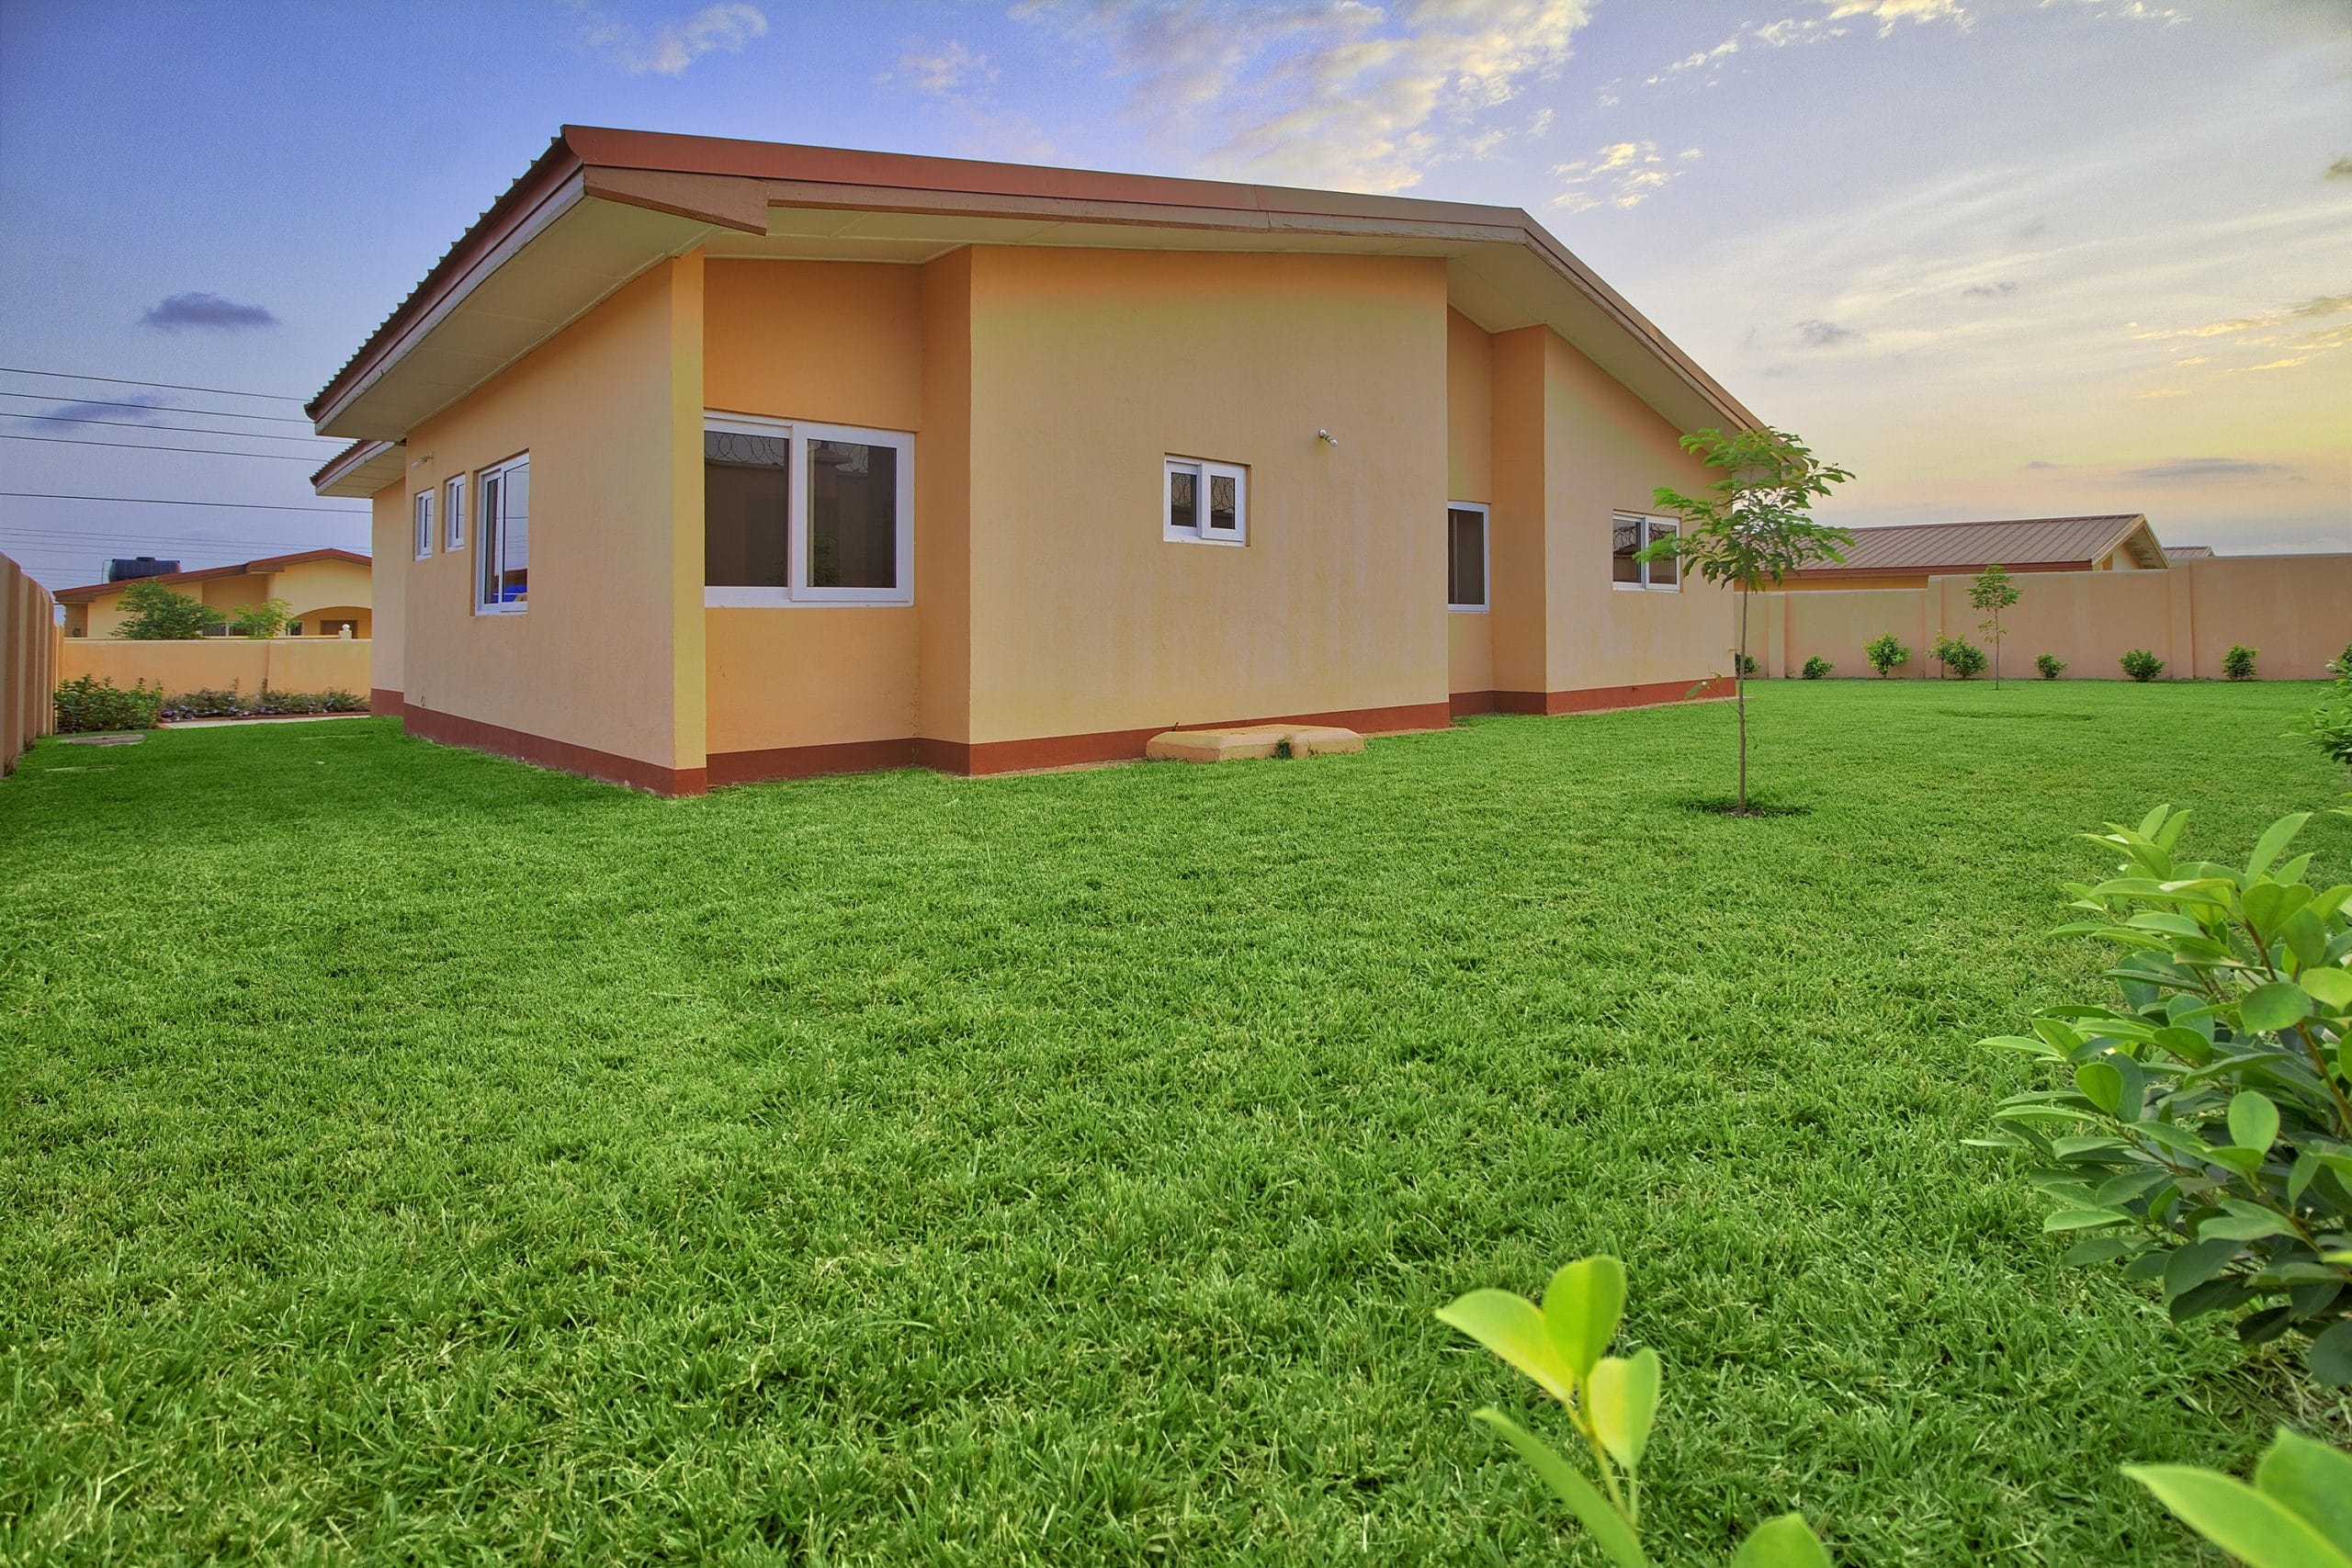 3 Bedroom House For Rent in Katamanso